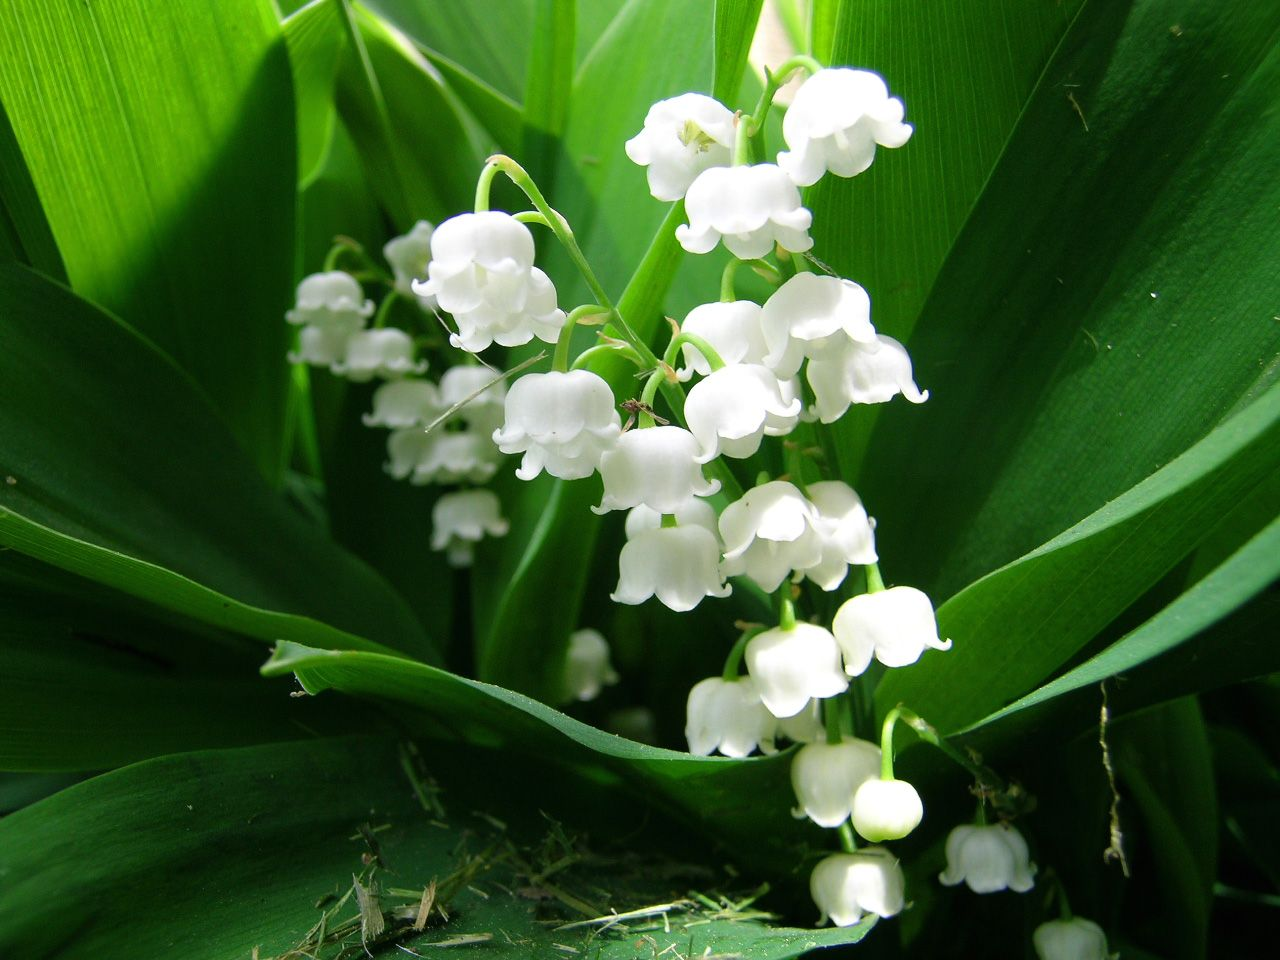 Lilies Of The Valley As Filler Google Search Lily Of The Valley Flowers Growing Lilies Valley Flowers